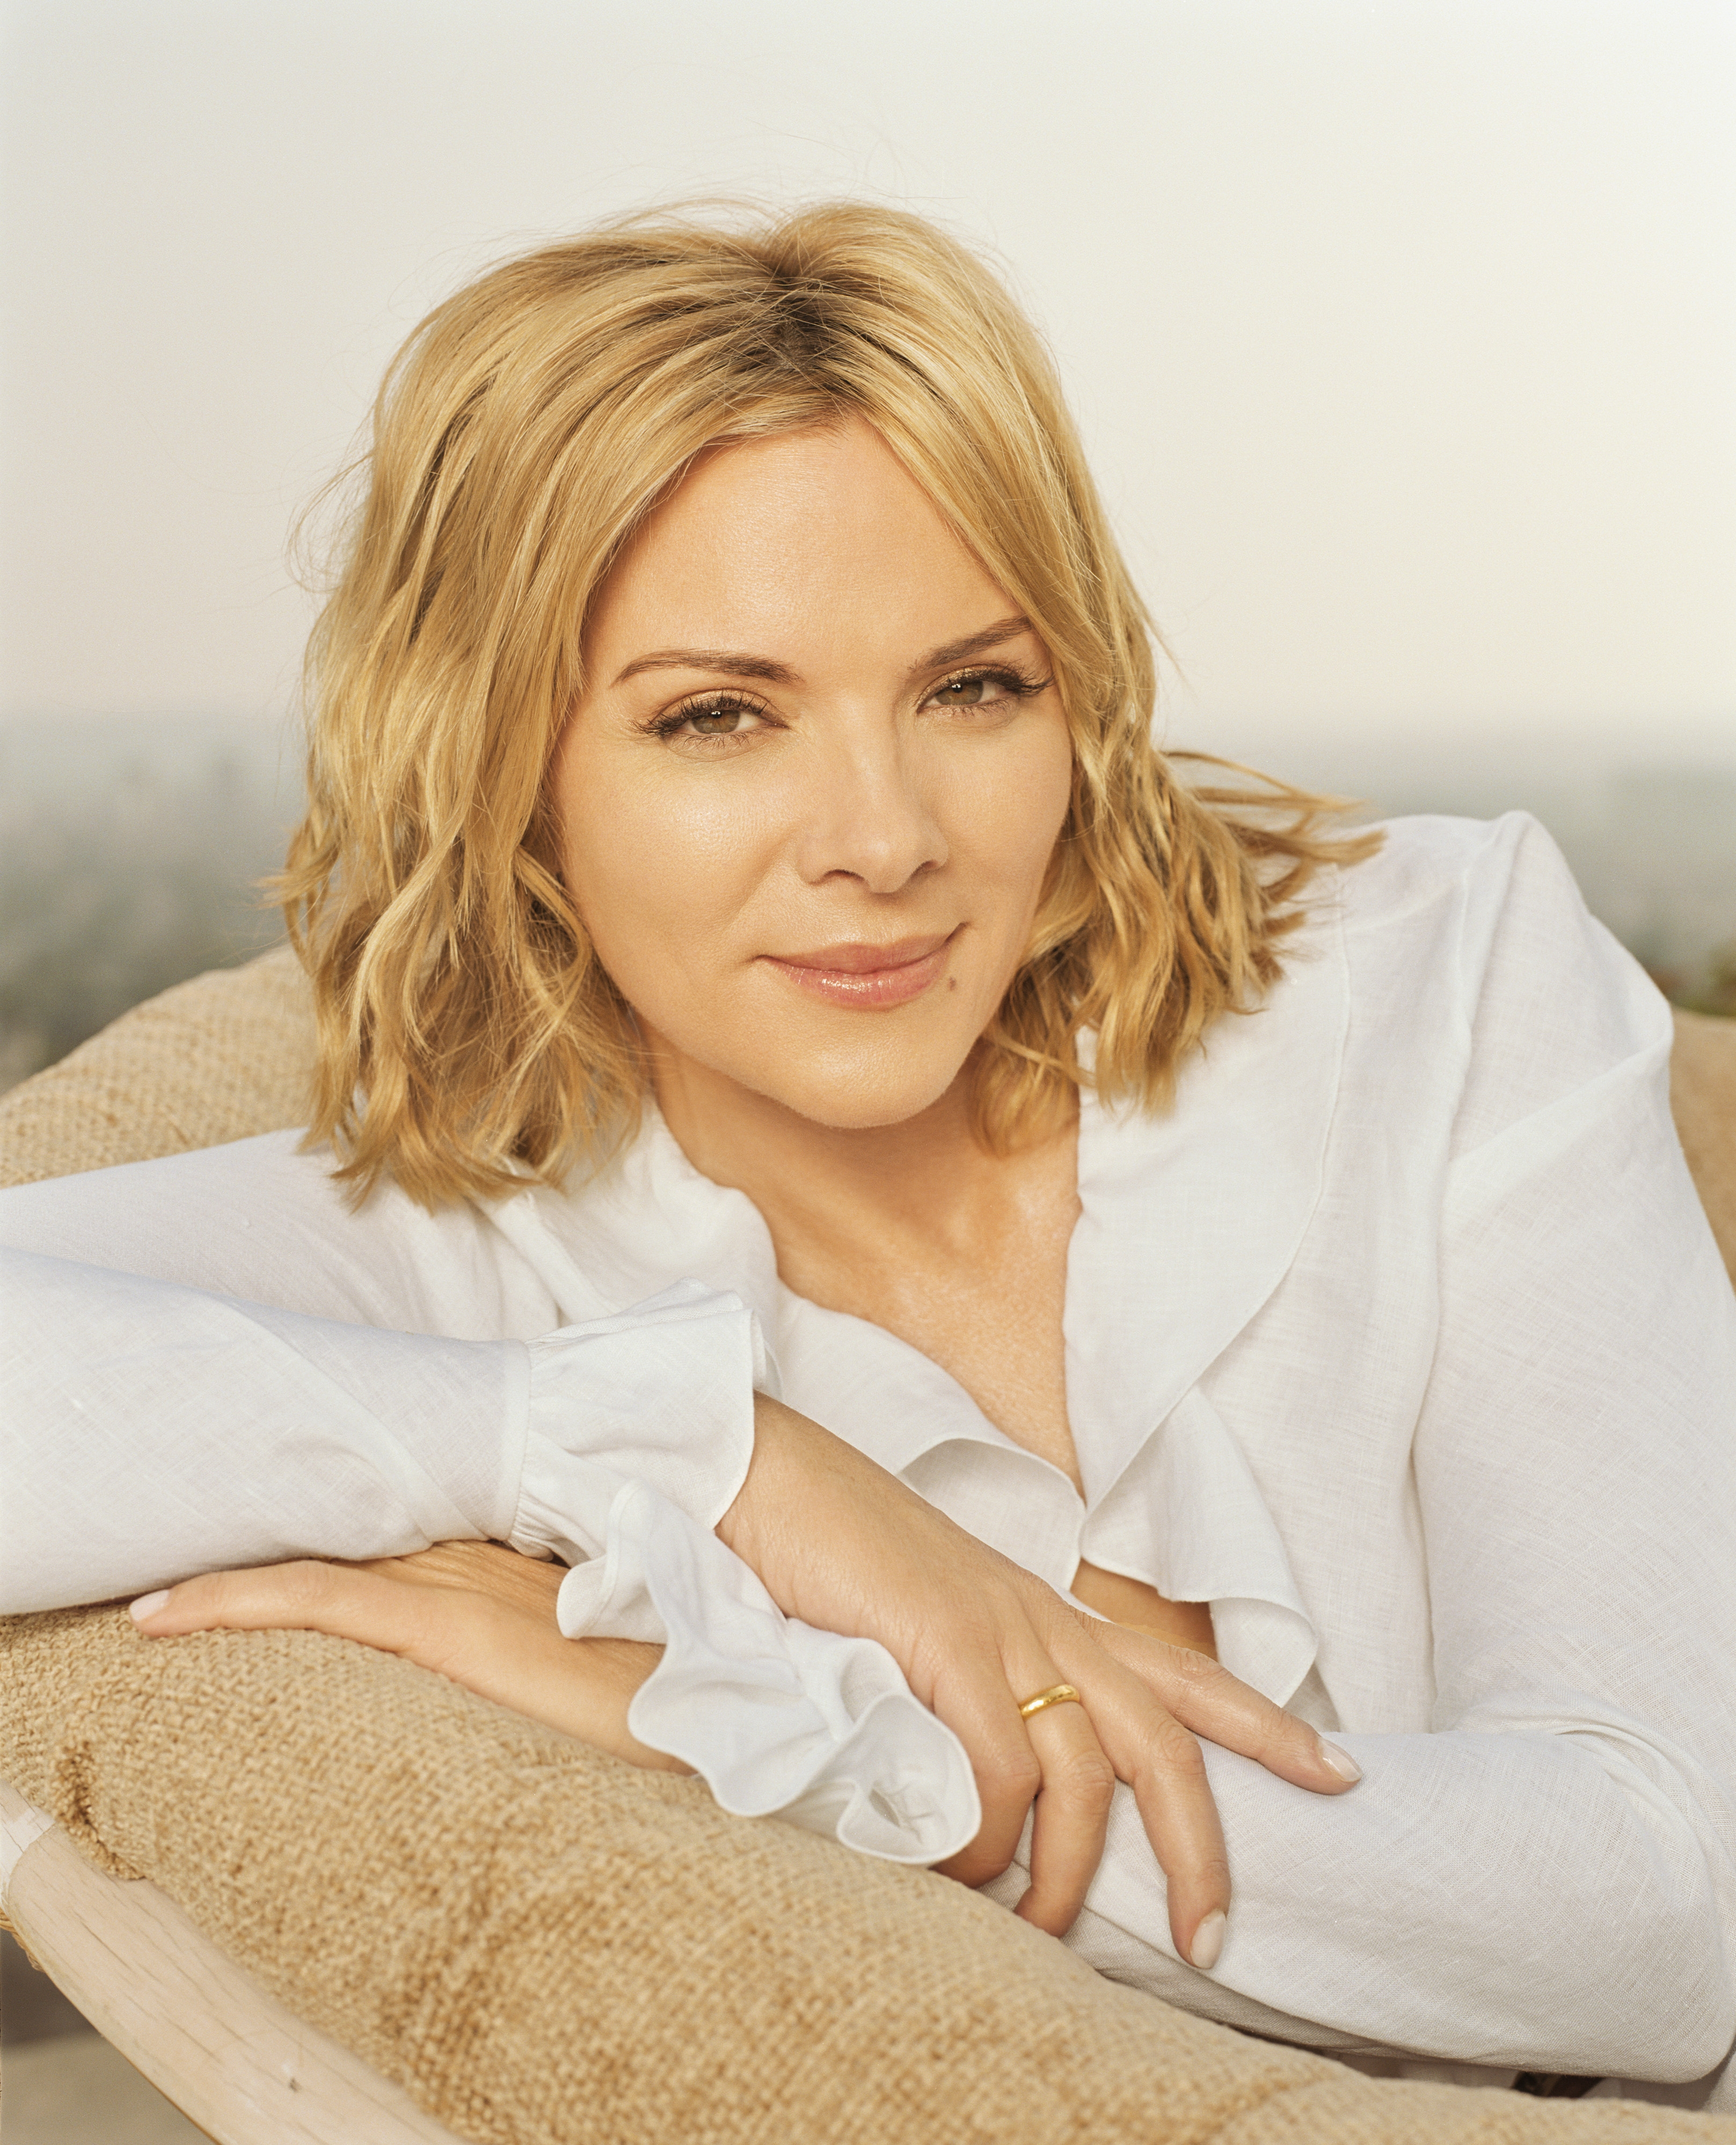 Award-Winning Actress Kim Cattrall to Mentor CFC Actors Conservatory Residents Kim Cattrall